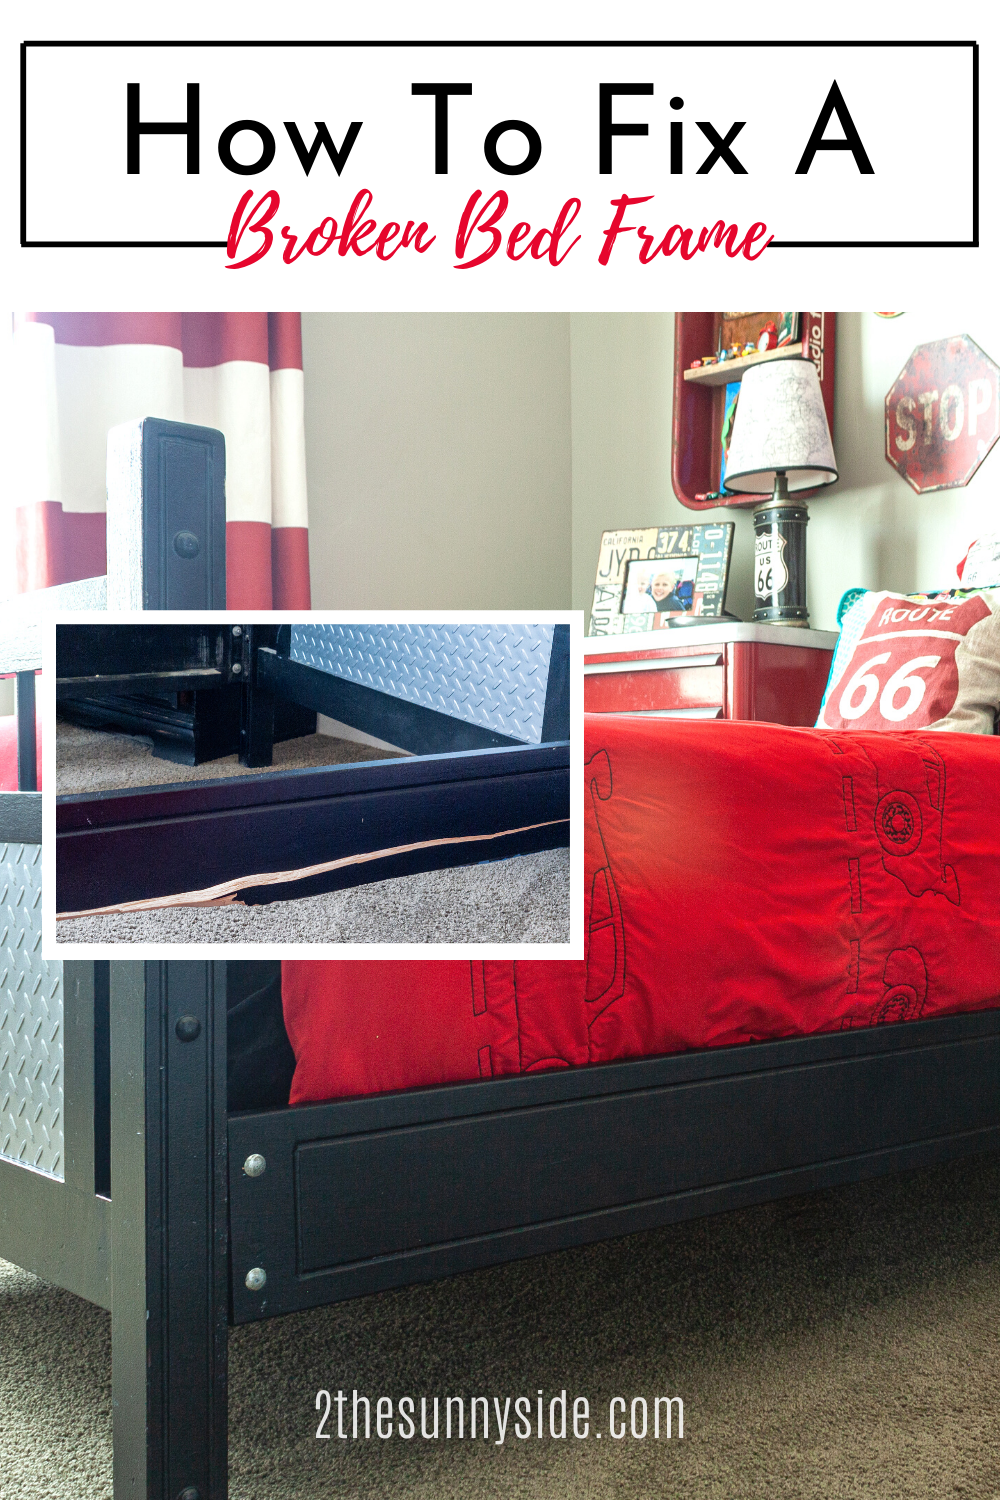 How To Fix A Broken Bed Frame In 2020 Diy Furniture Projects